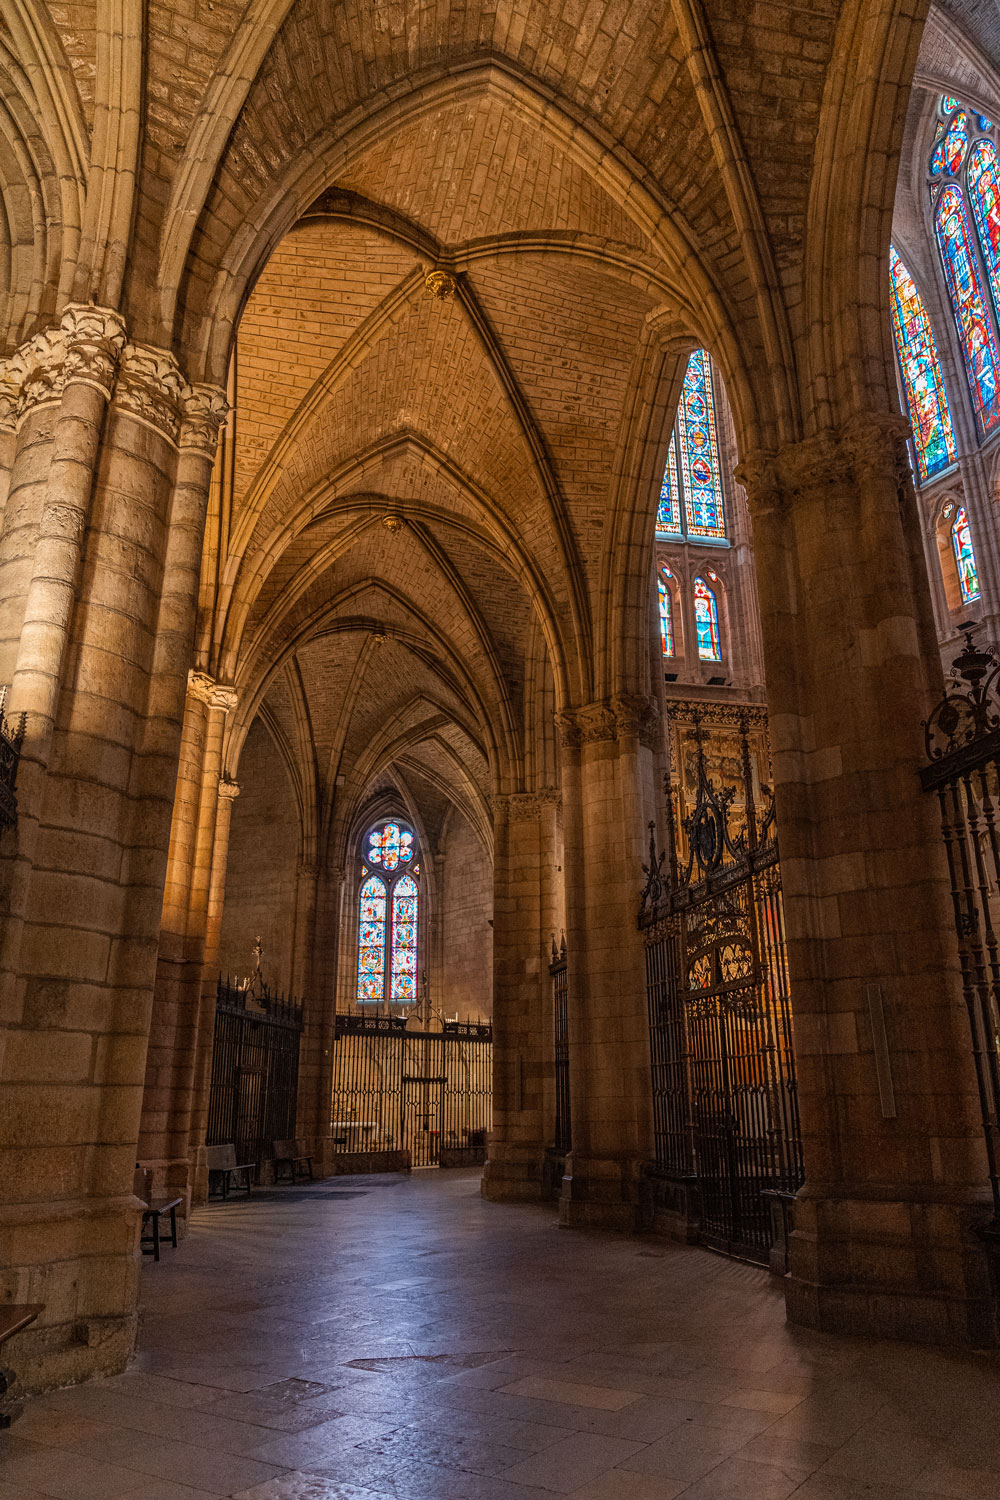 Interior of the Cathedral of Leon